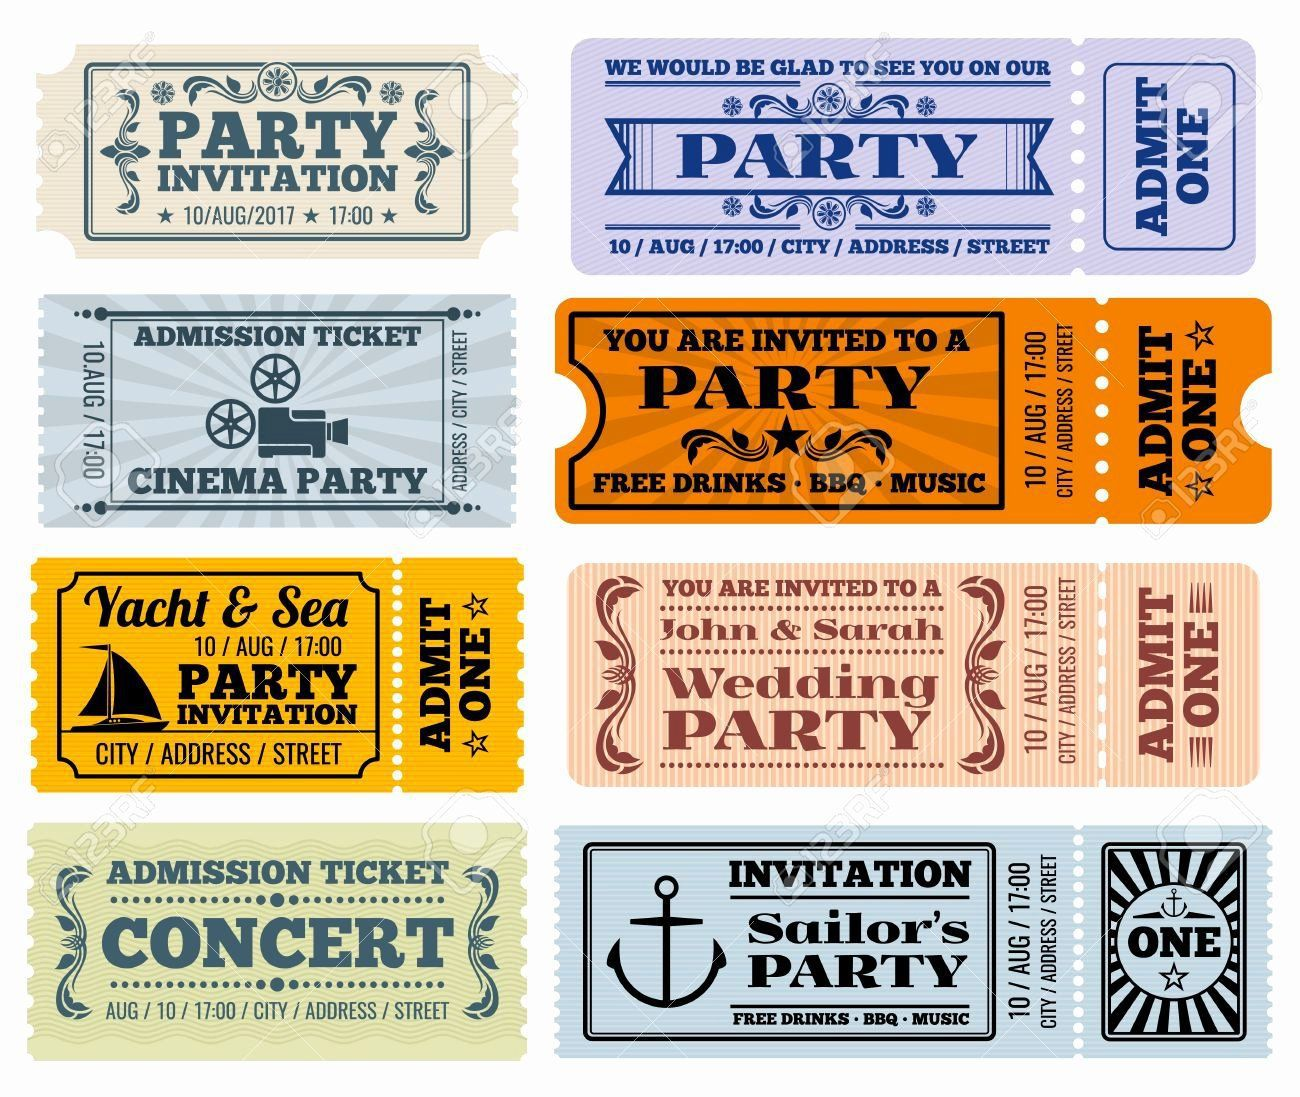 003 Wonderful Vintage Concert Ticket Template Free Download Design Full